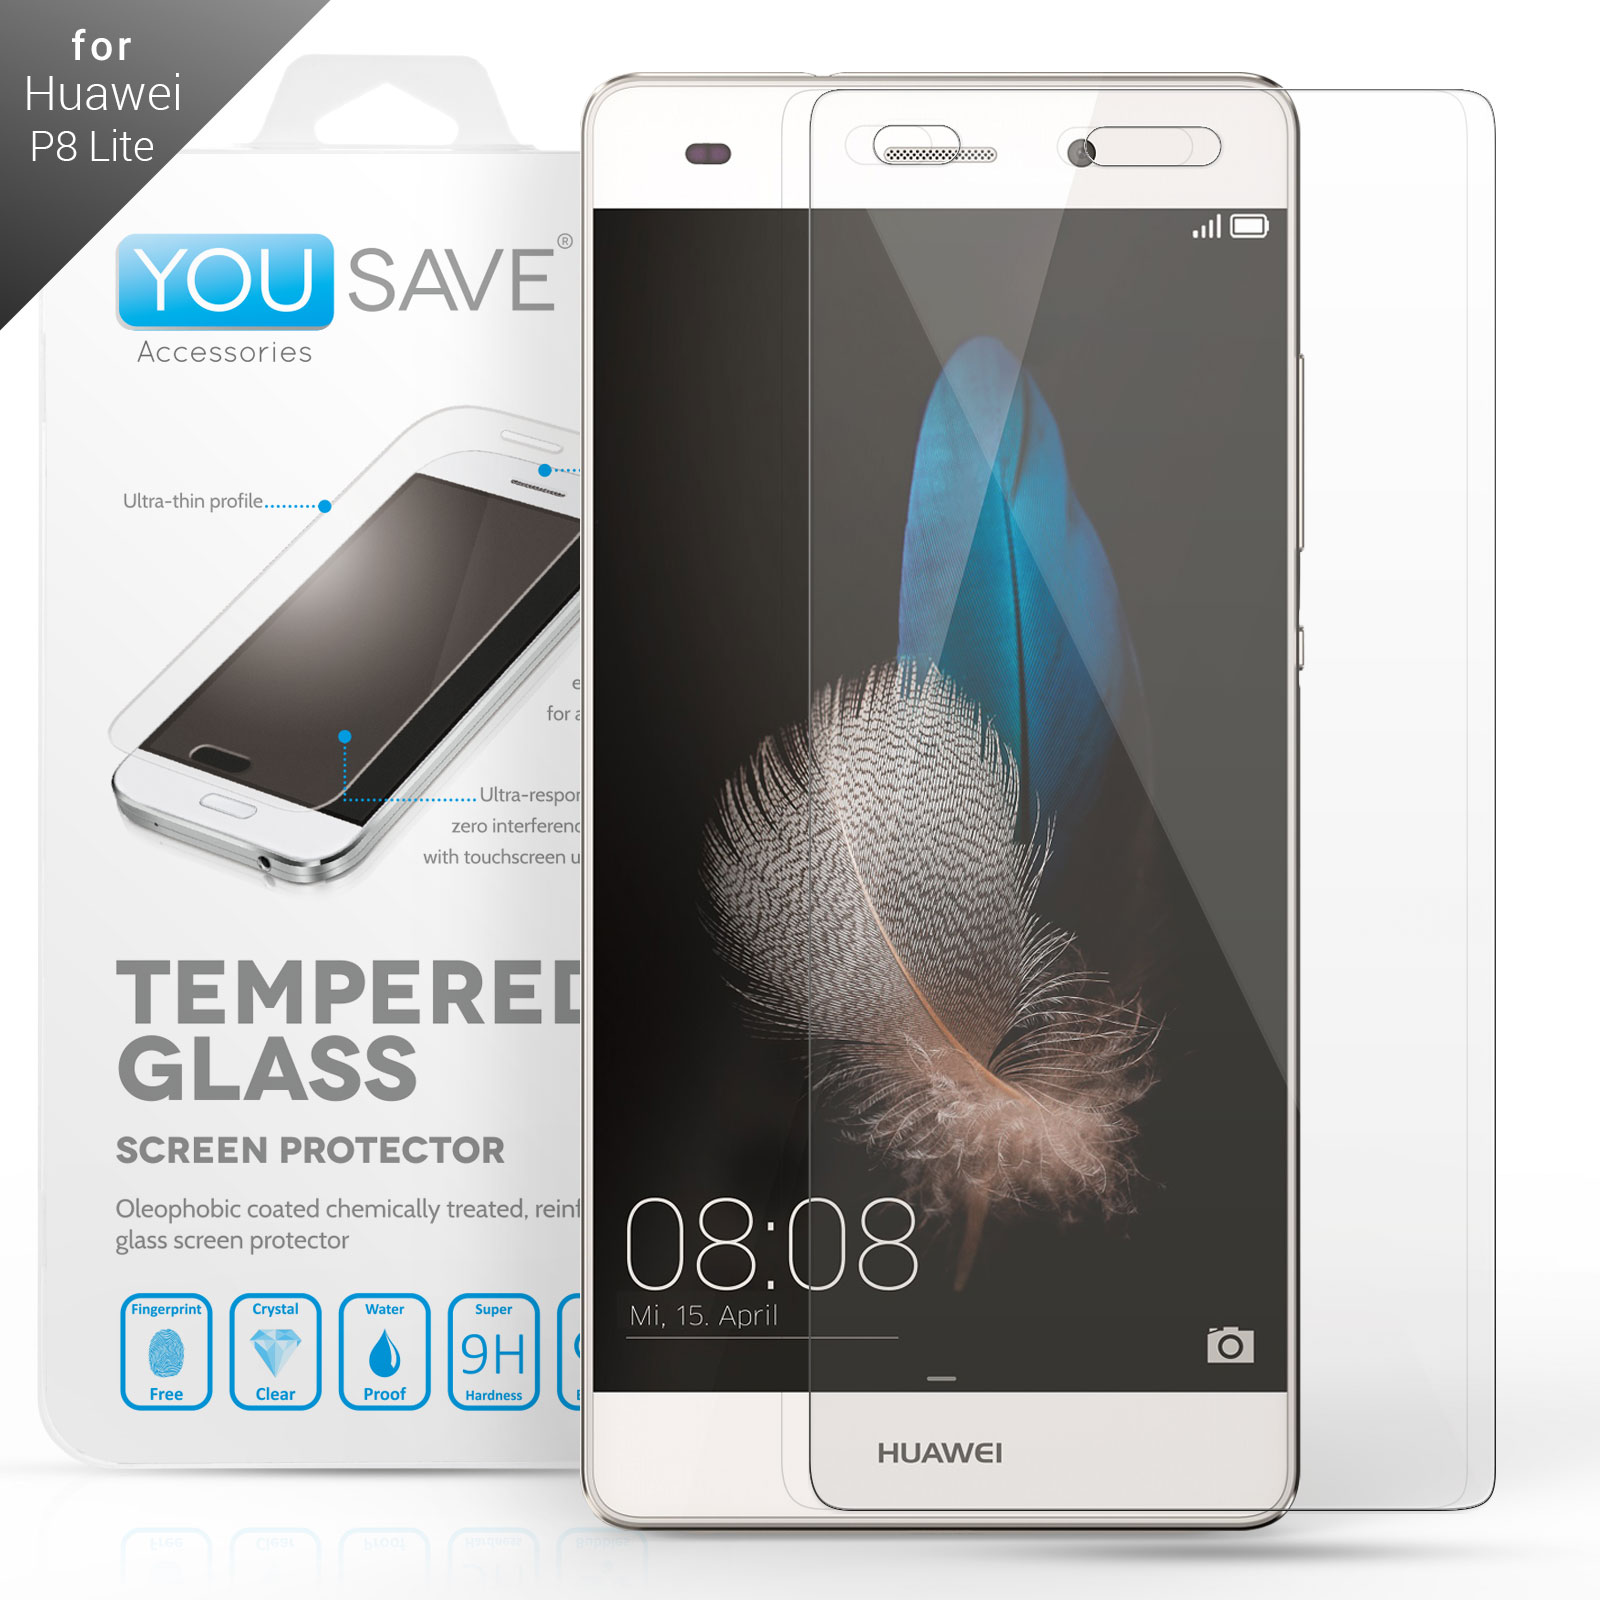 YouSave Accessories Huawei P8 Lite Glass Screen Protector